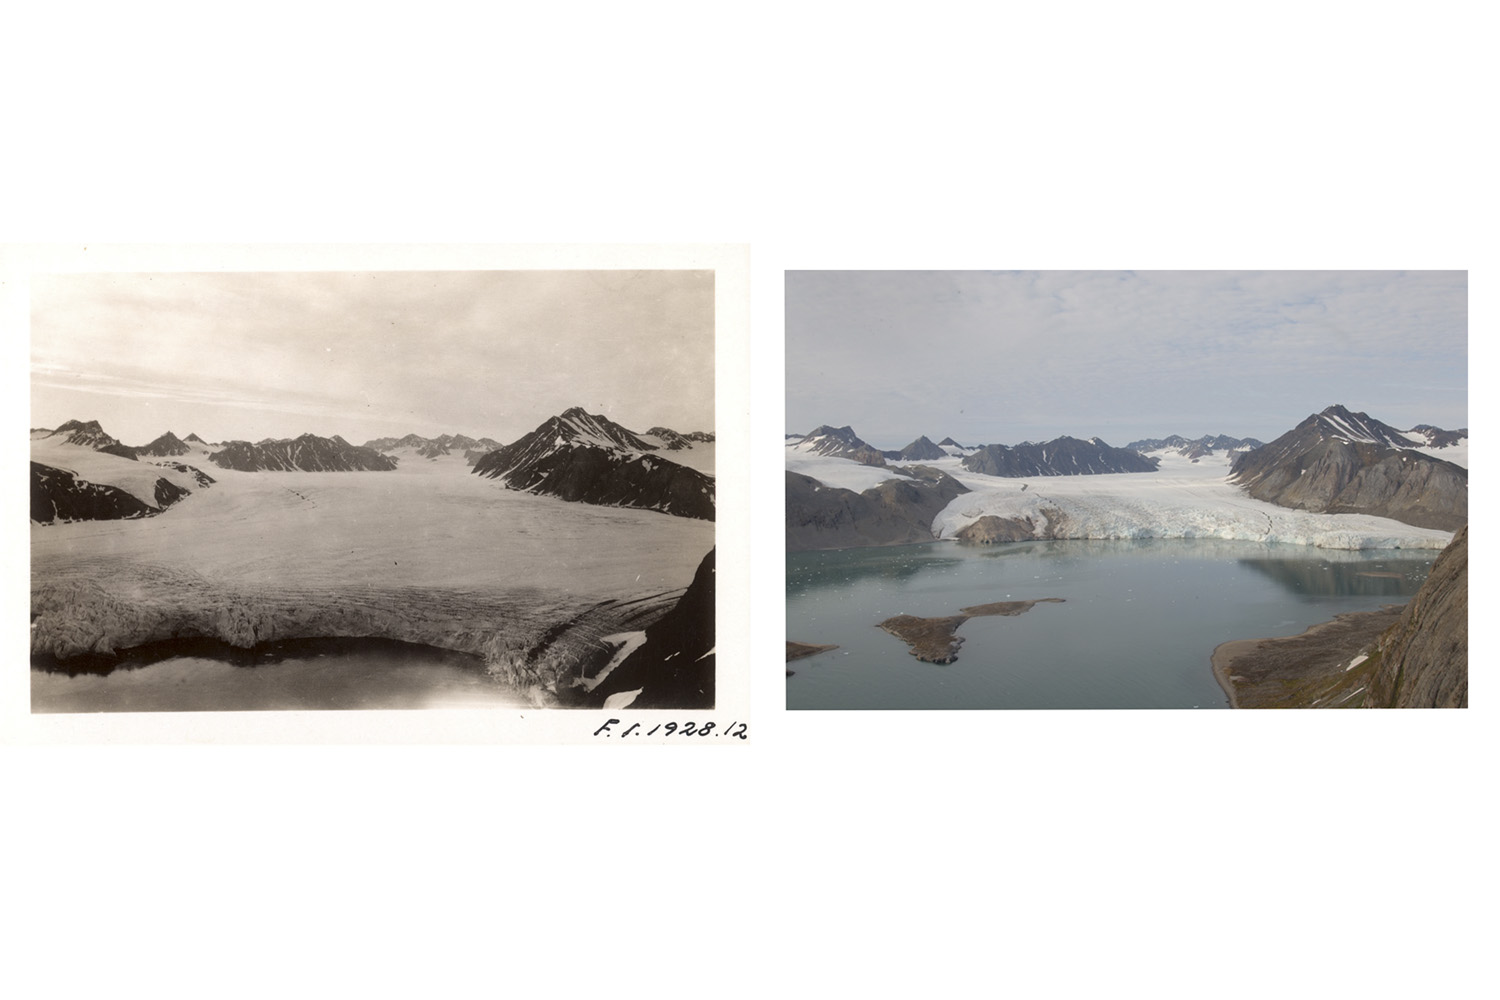 "Glacier ""Blomstrandbreen"" has retreated nearly 2 km since 1928, with an accelerated rate of 35 metres lost per year since 1960 and even higher in the past decade. B/w image courtesy of Norwegian Polar Institute. Color image Christian Aslund/Greenpeace"